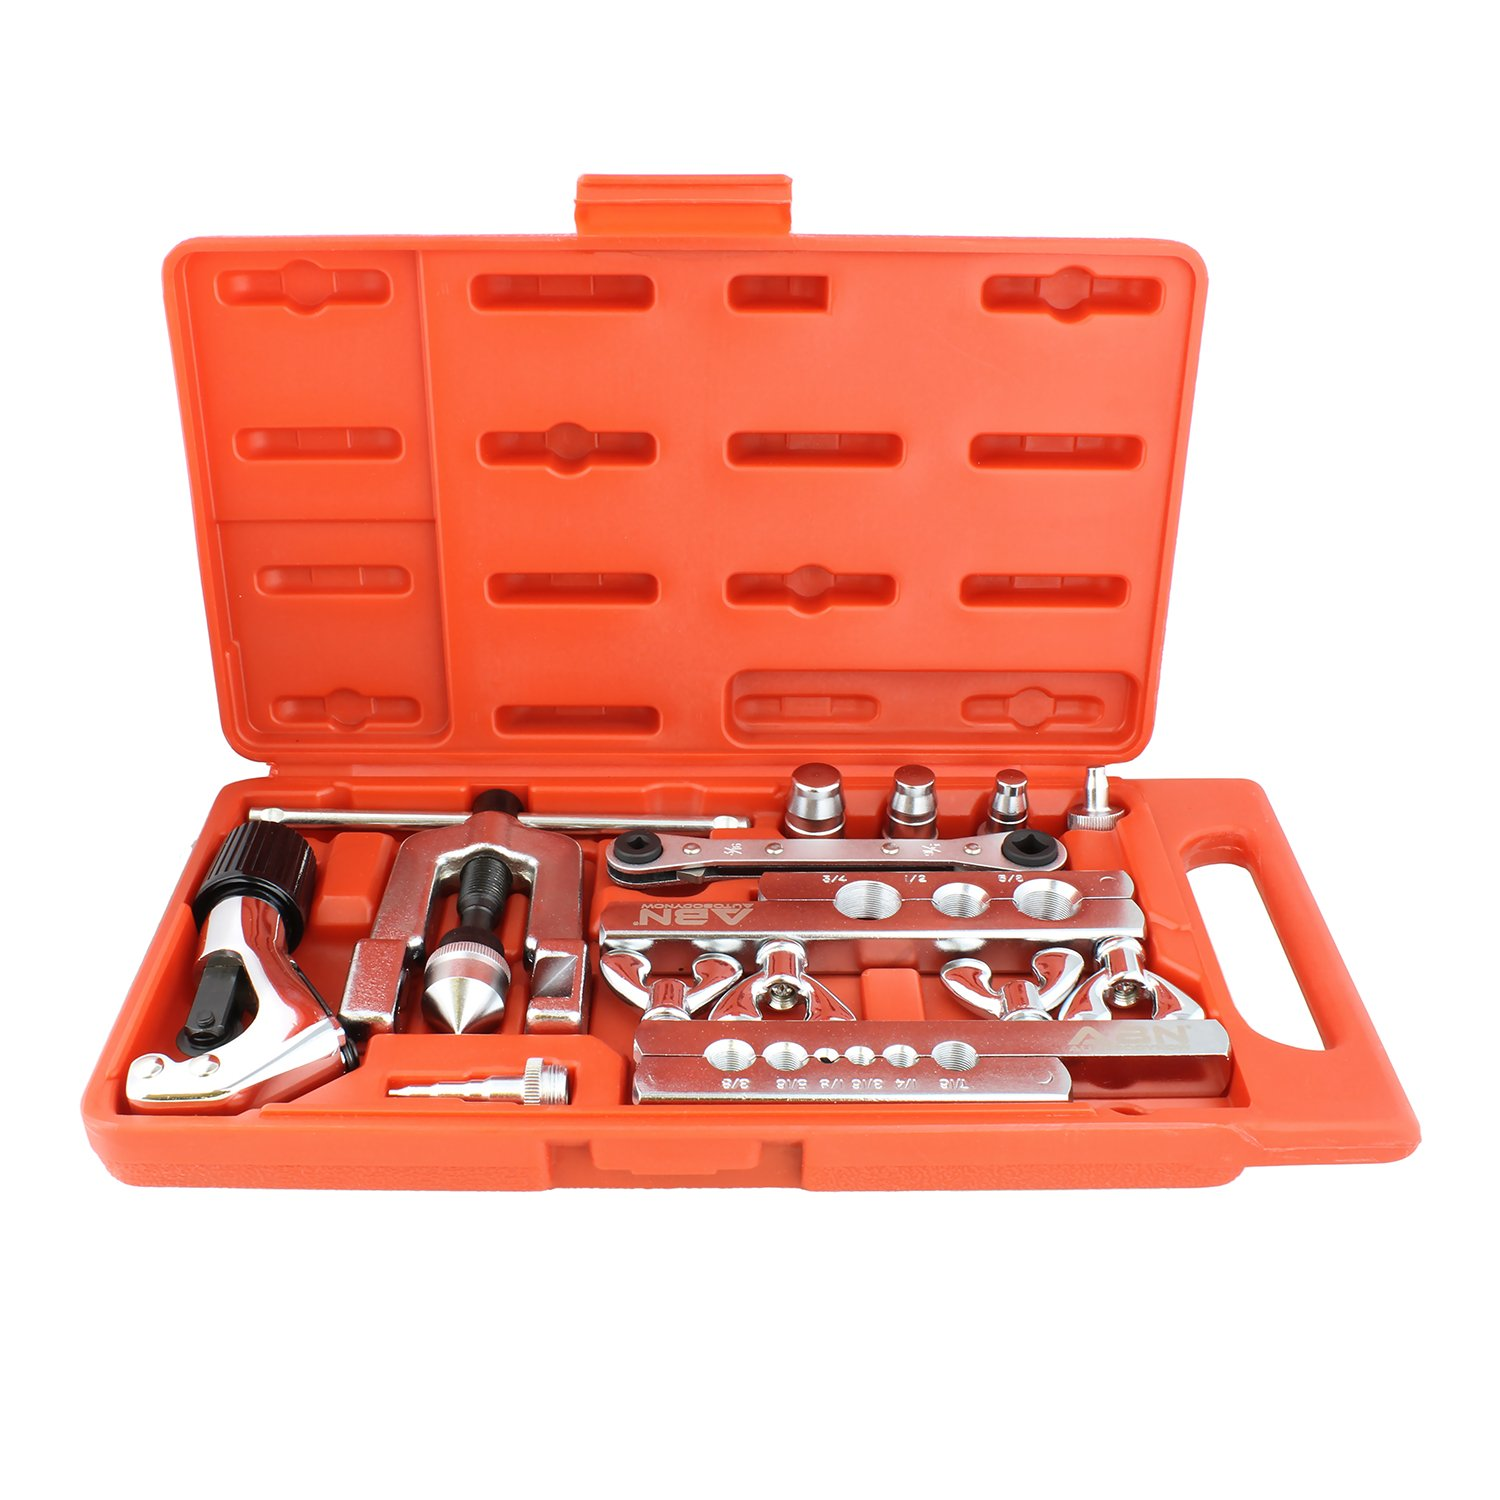 Brake Line Swage and Tube Flare Kit ABN Flaring Tool Set 10 Piece Flaring and Swaging Tool Kit with Tube Cutter